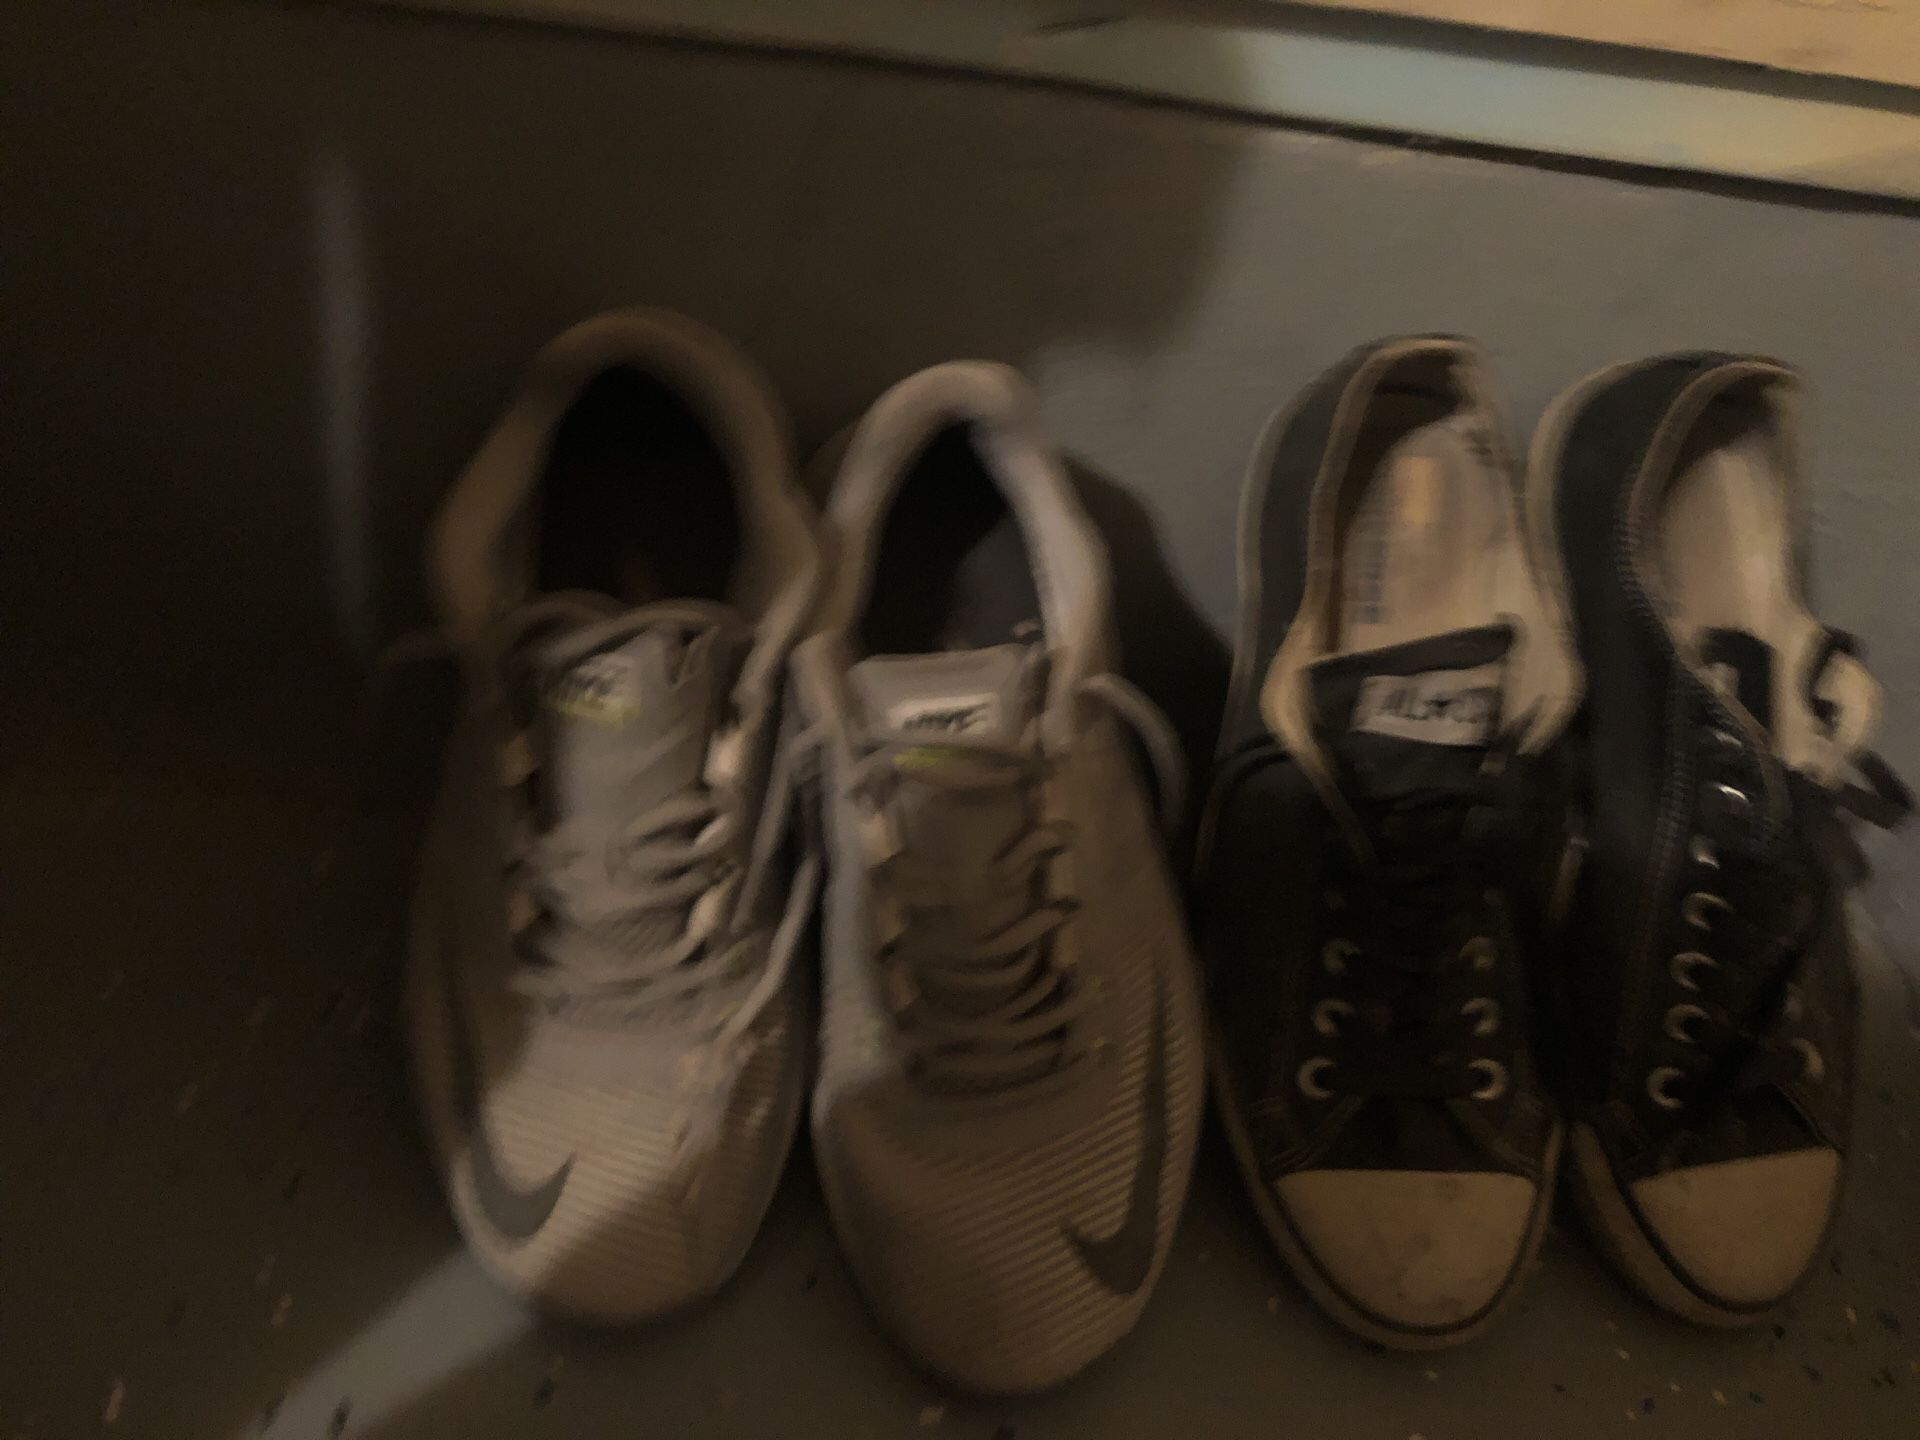 Used Nike, Adidas & converse Shoes just need cleaned been in my garage $10 each size 9-9.5